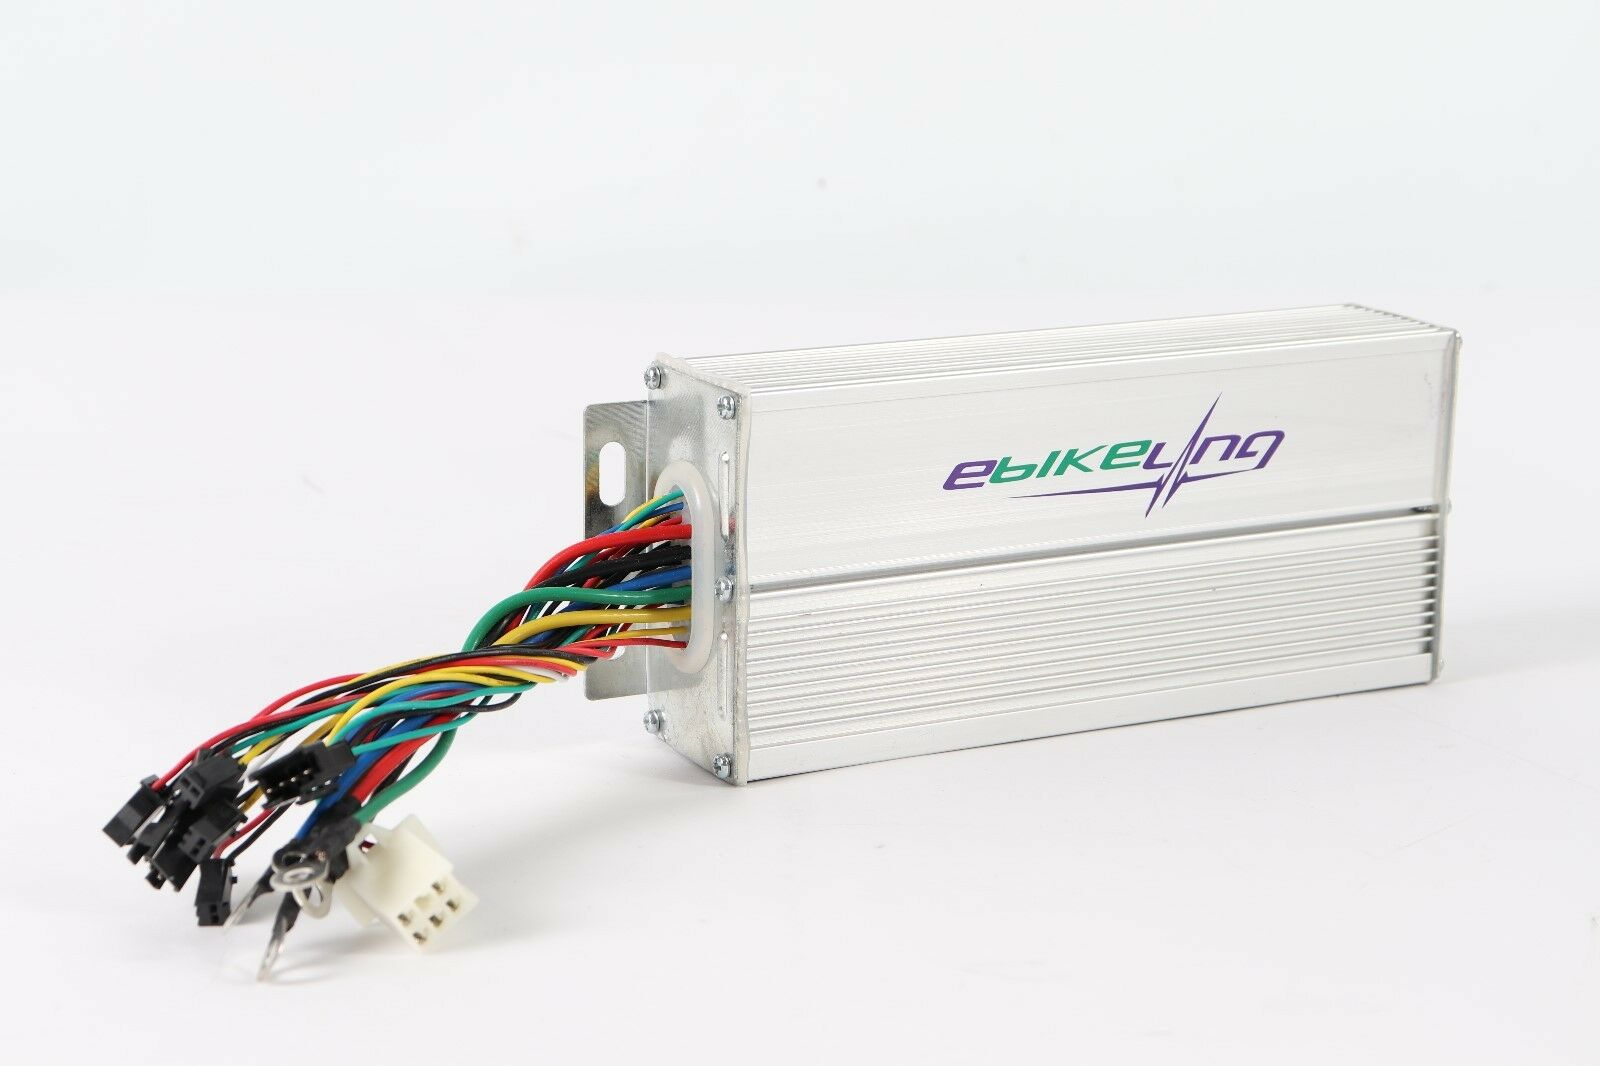 48V 35A Brushless  Controller with 4-pin 810 LED display ebikeling ebike  comfortable